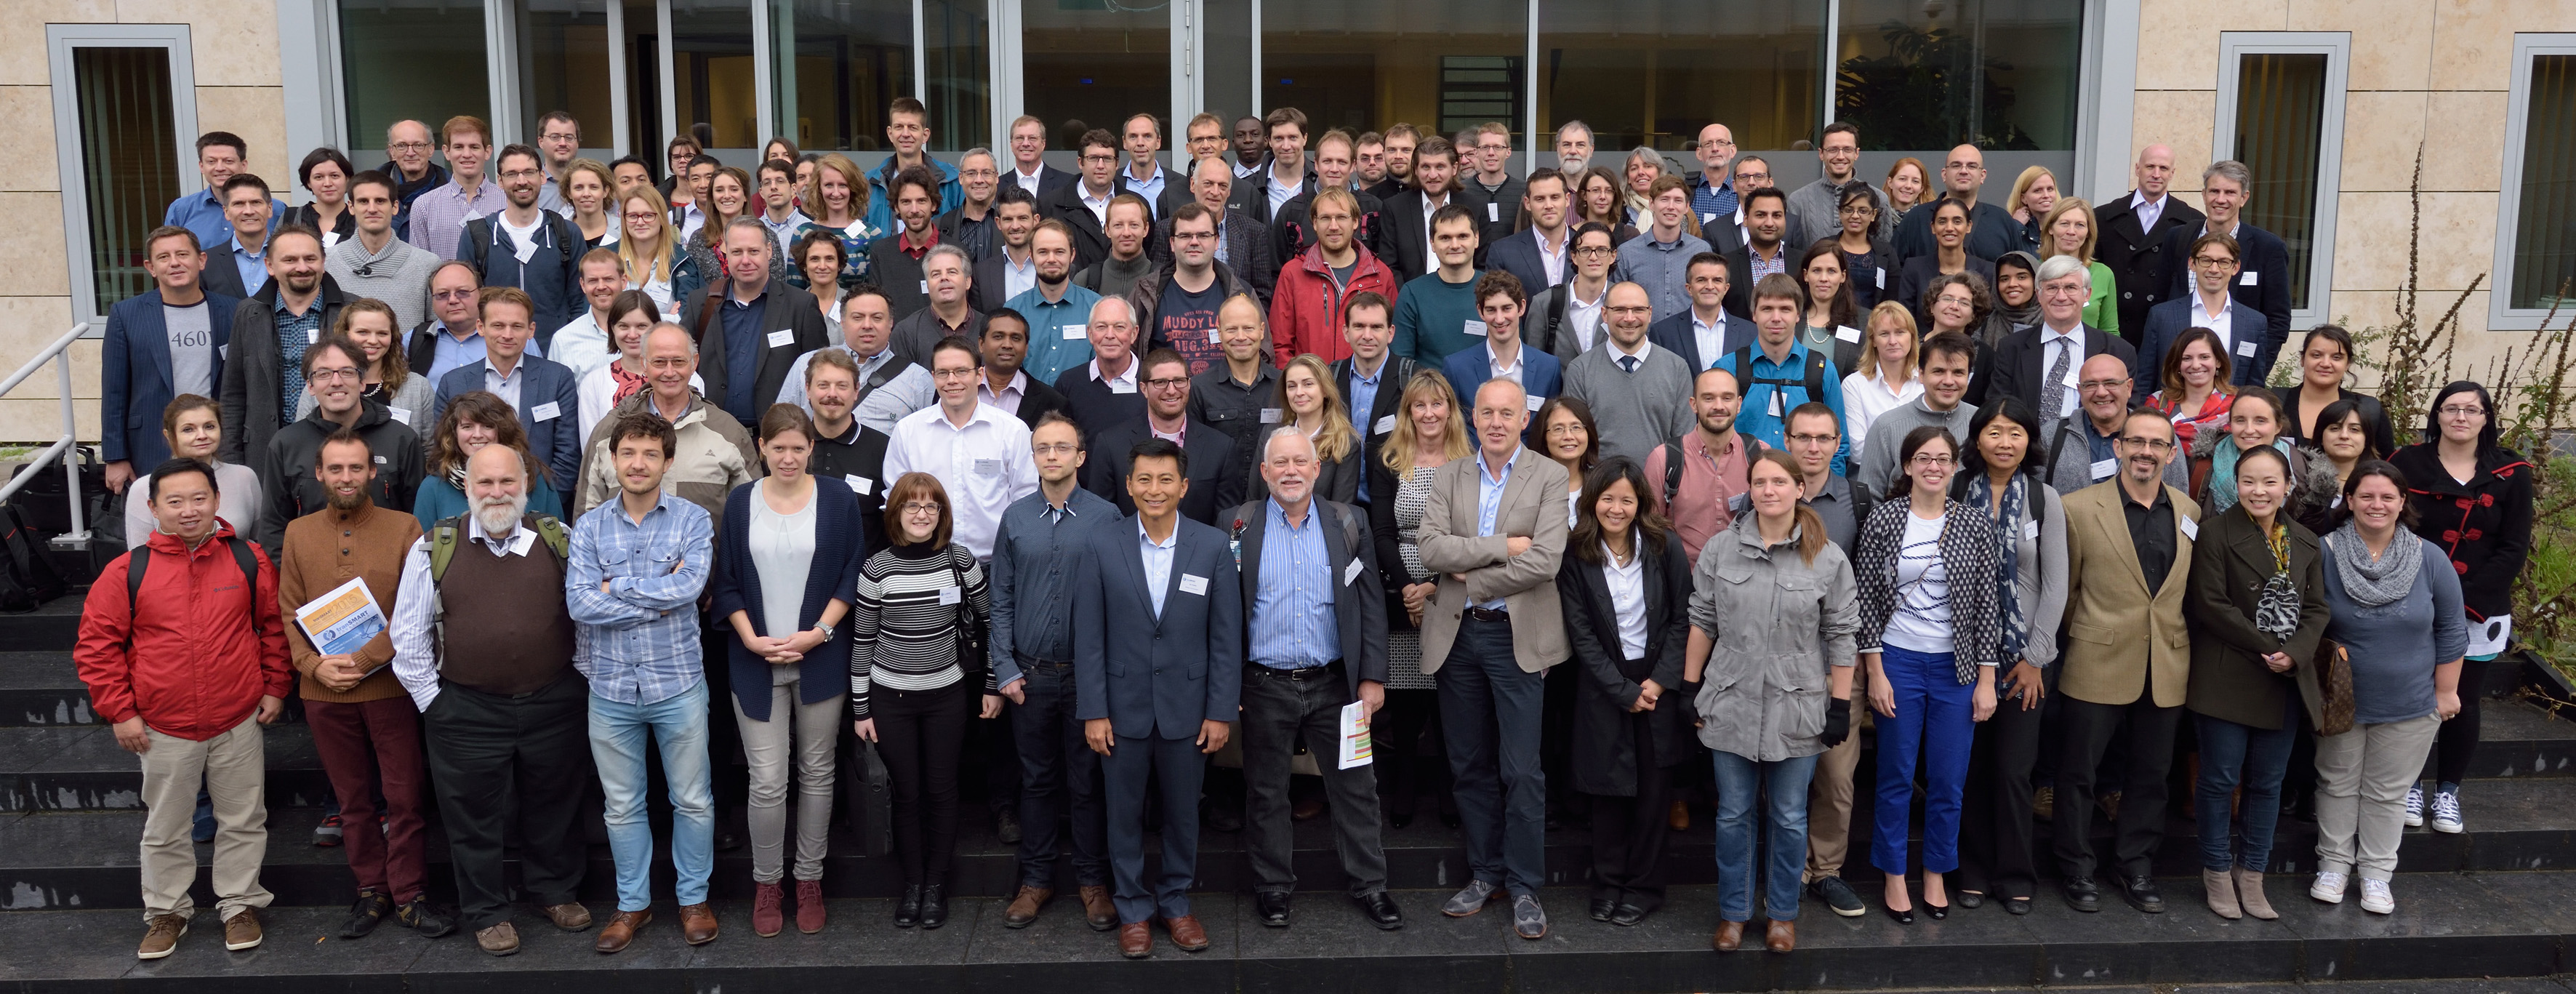 001: 2015 Annual Meeting Group Photo